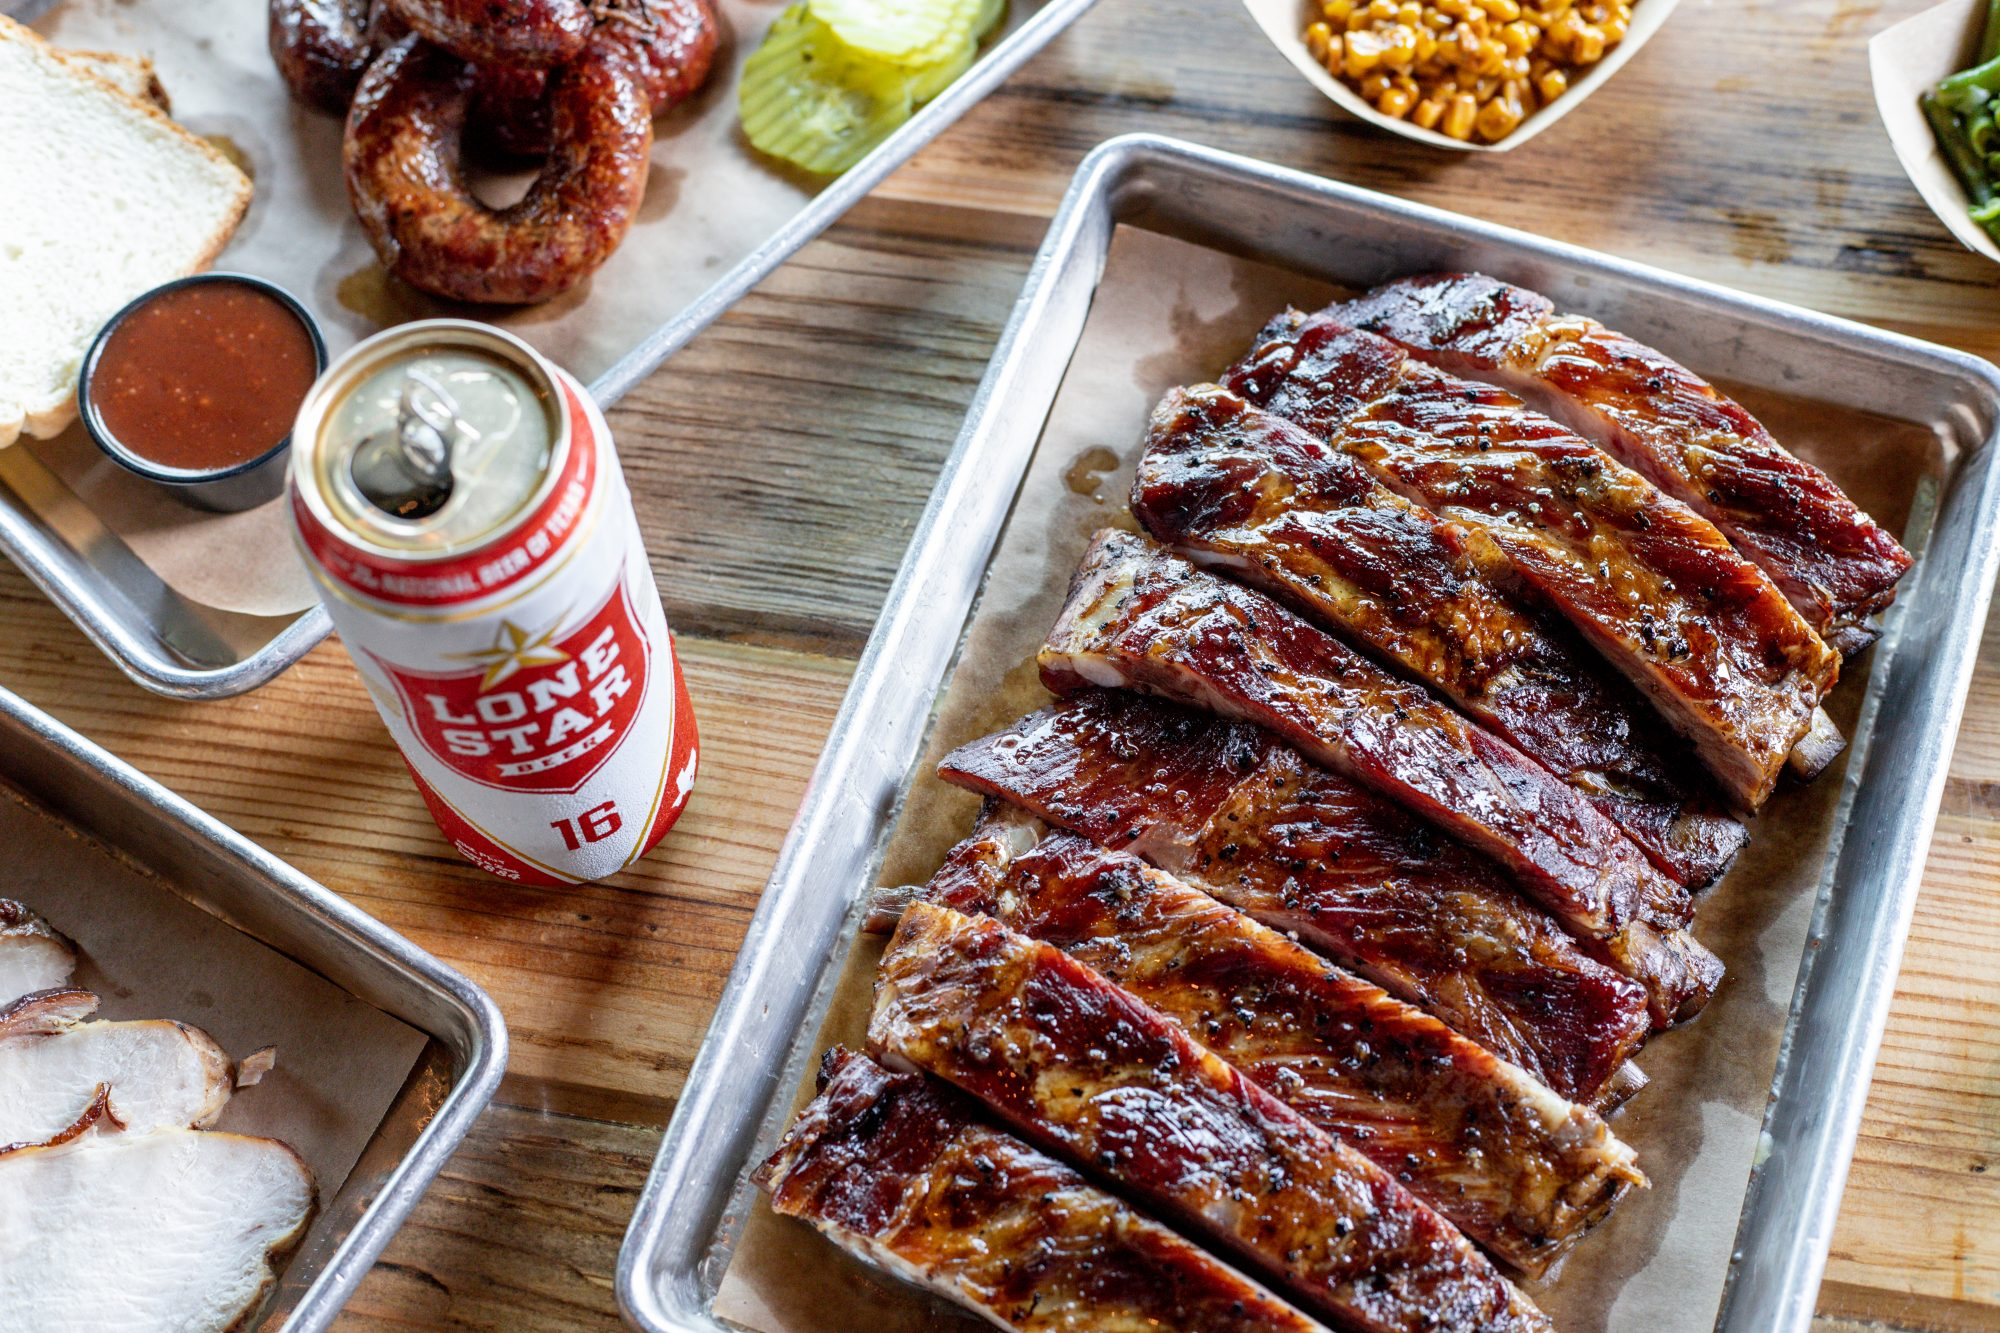 6. Black's Barbecue